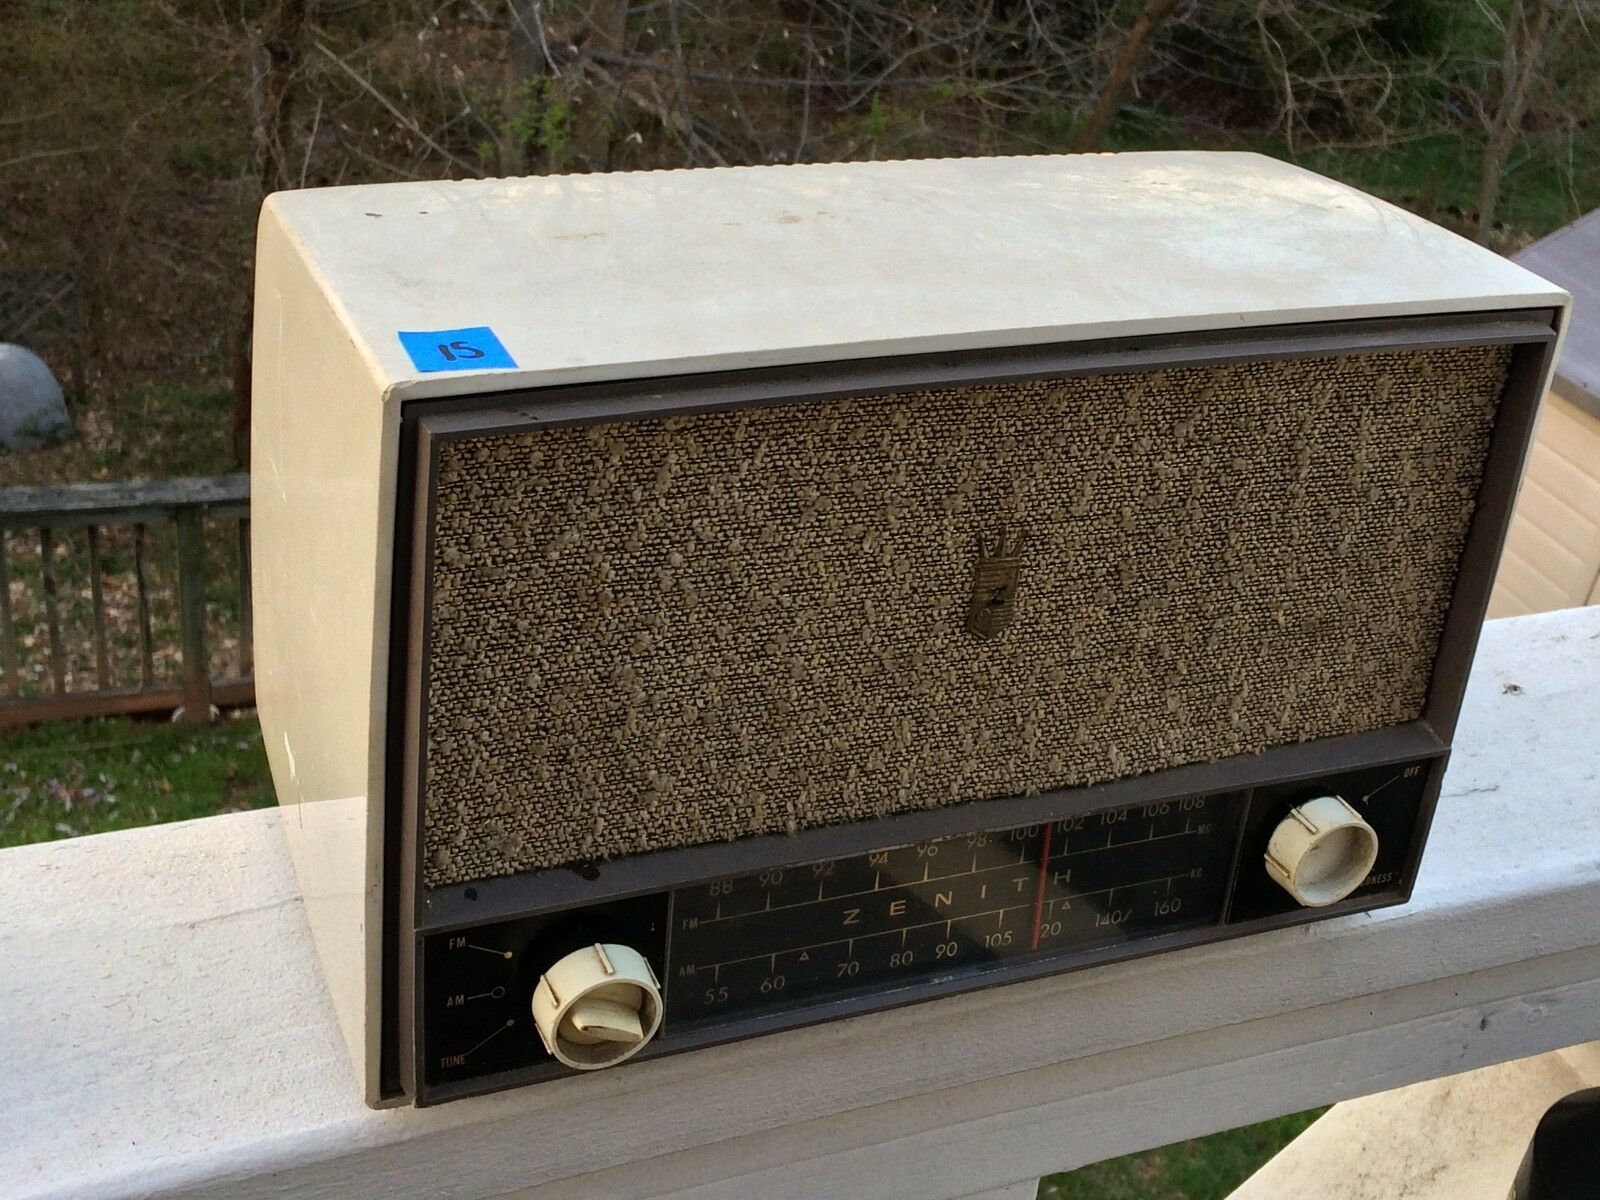 Vintage Art Deco Amfm Zenith Tabletop Tube Radio 5999 Picclick. 1 Of 11only Available. Wiring. Zenith Radio Schematic 7h920 At Scoala.co